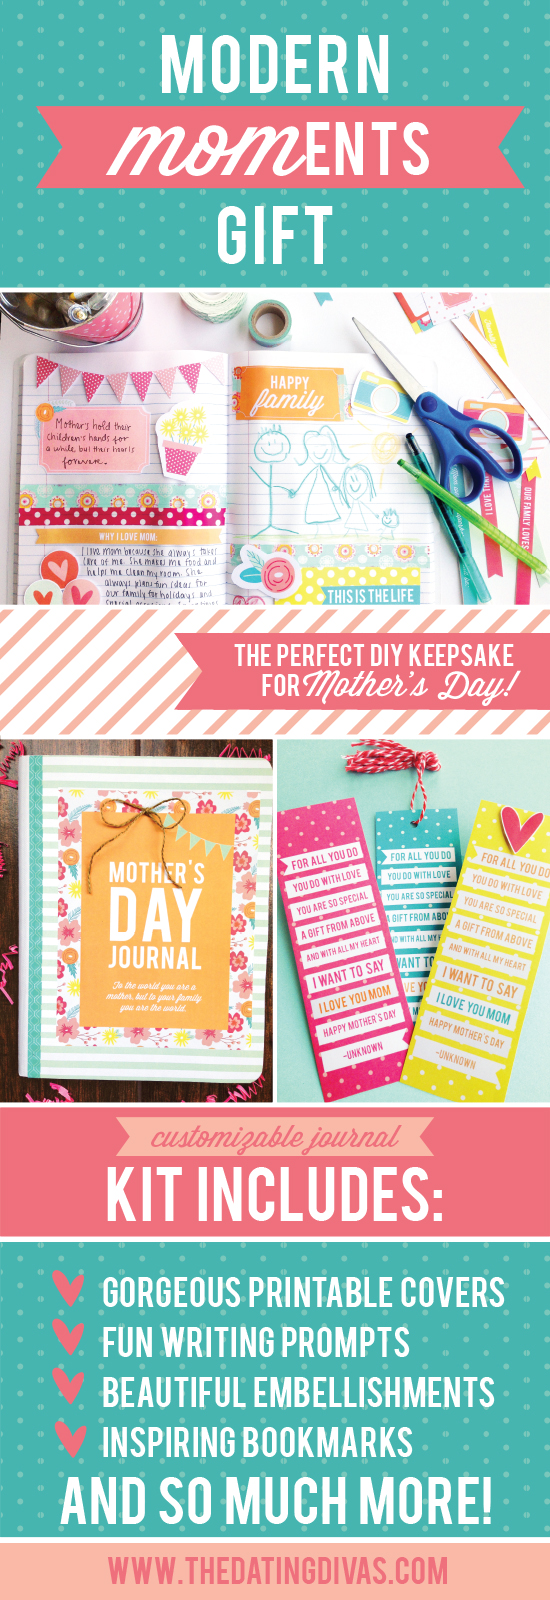 Mothers Day Journal Modern MOMents